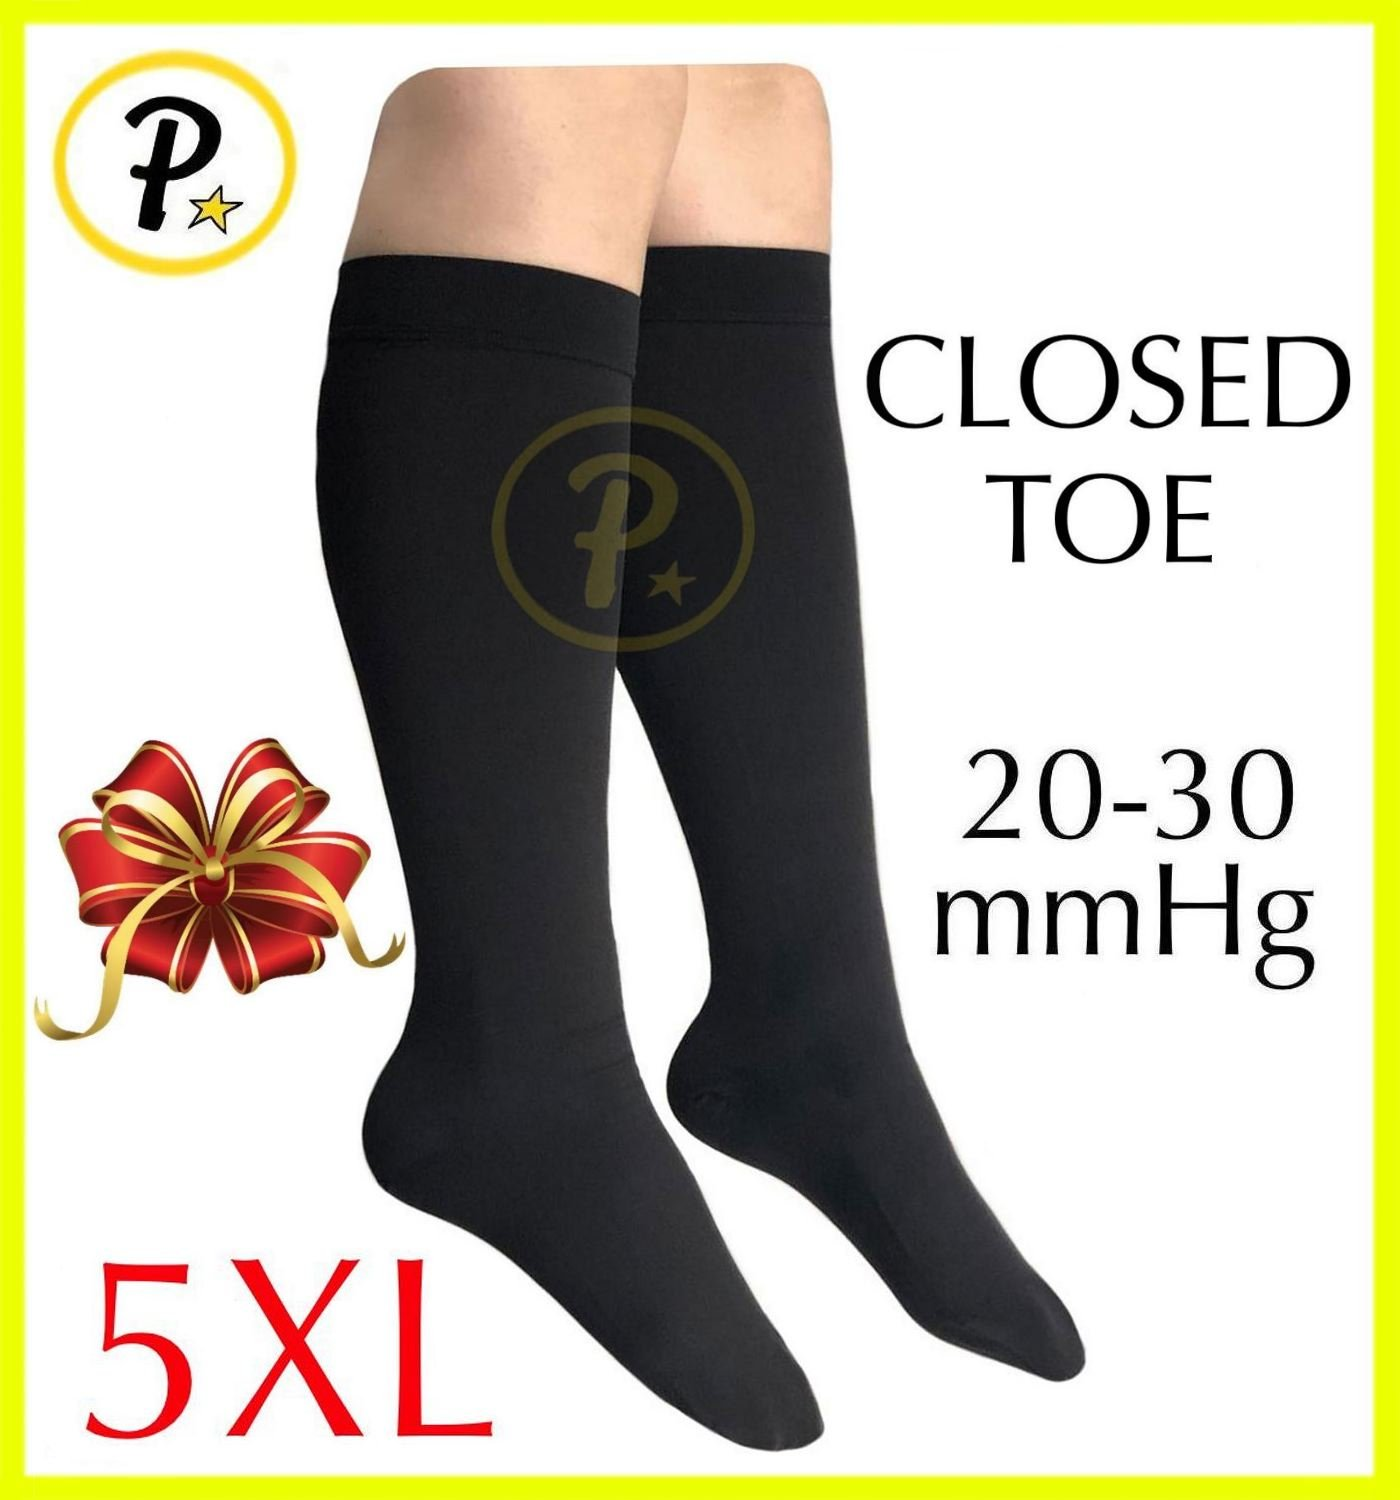 Presadee Closed Toe (BIG & TALL SUPER SIZE) Traditional 20-30 mmHg Compression Grade Swelling Veins Ankle Calf Leg Sock Support (Black, 5XL) by Presadee